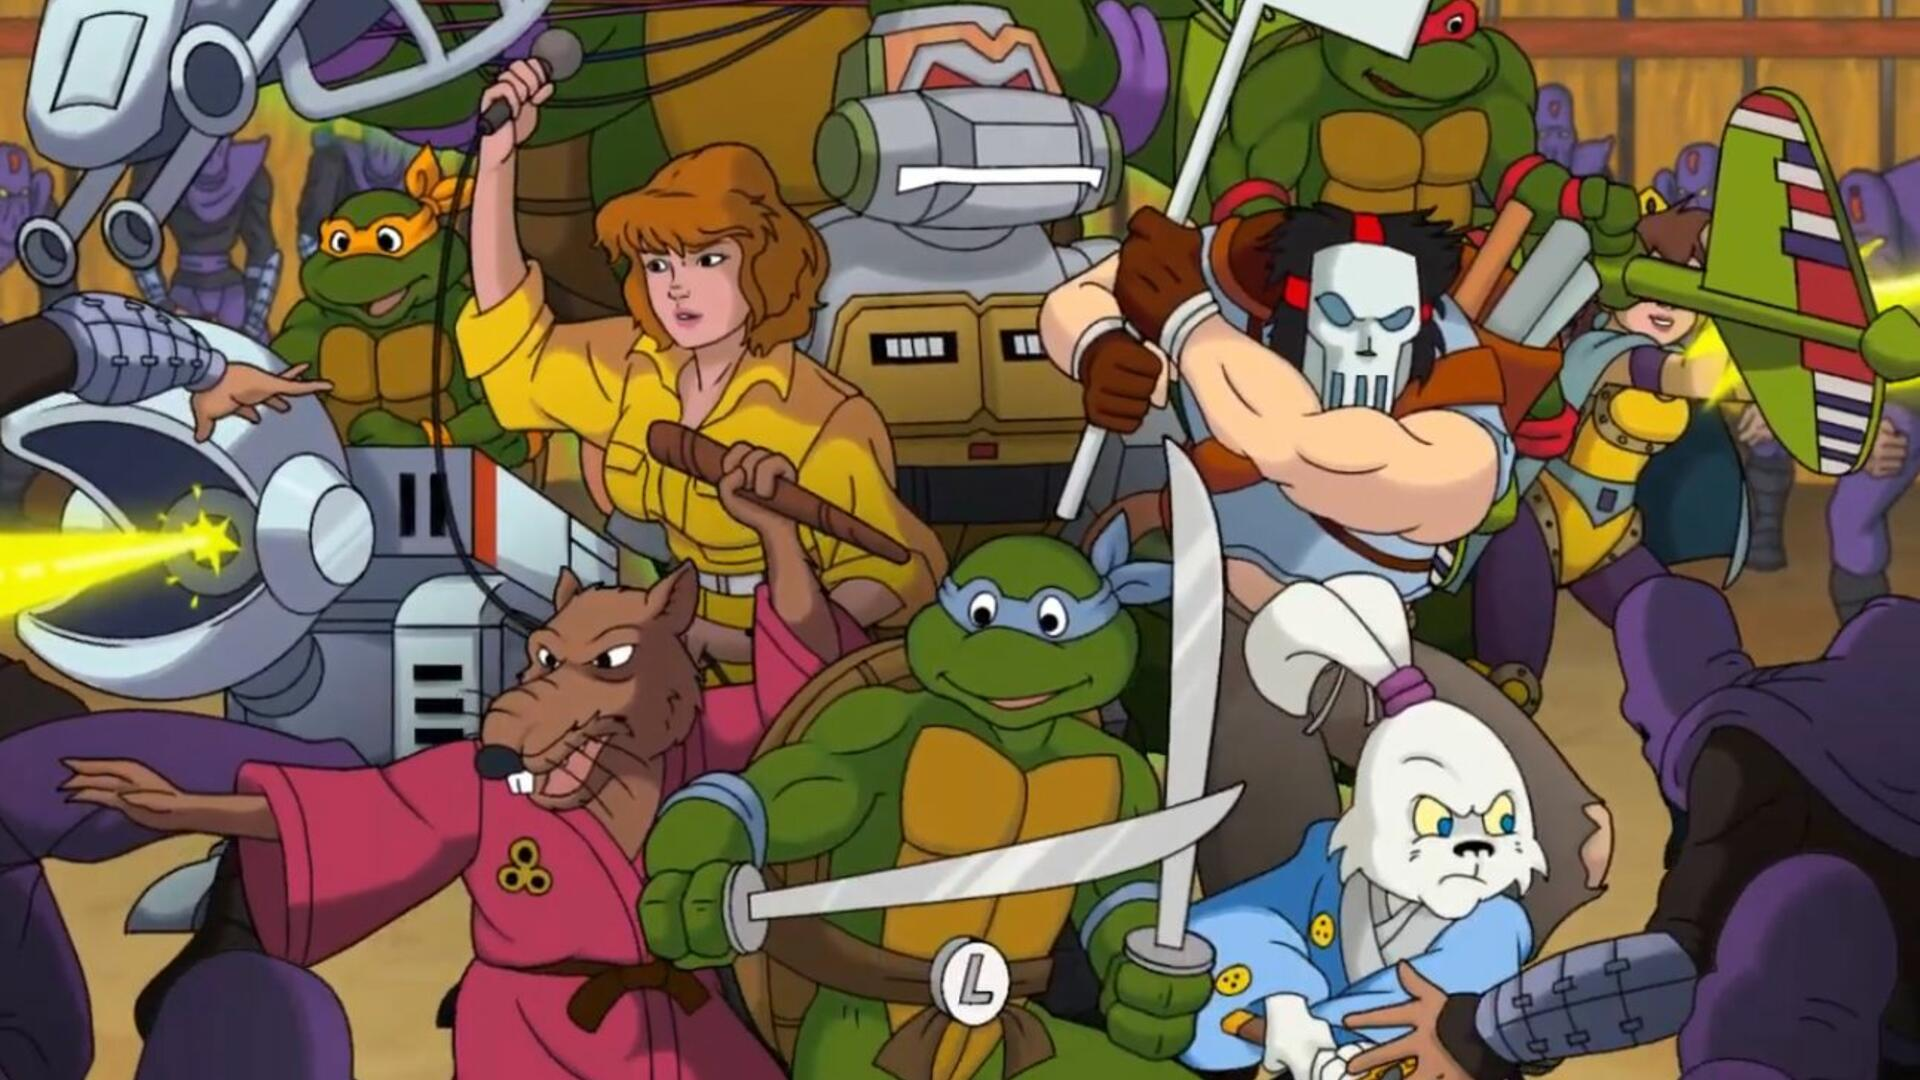 Teenage Mutant Ninja Turtles Nes Fans Create Awesome Looking Original Retro Throwback Usgamer